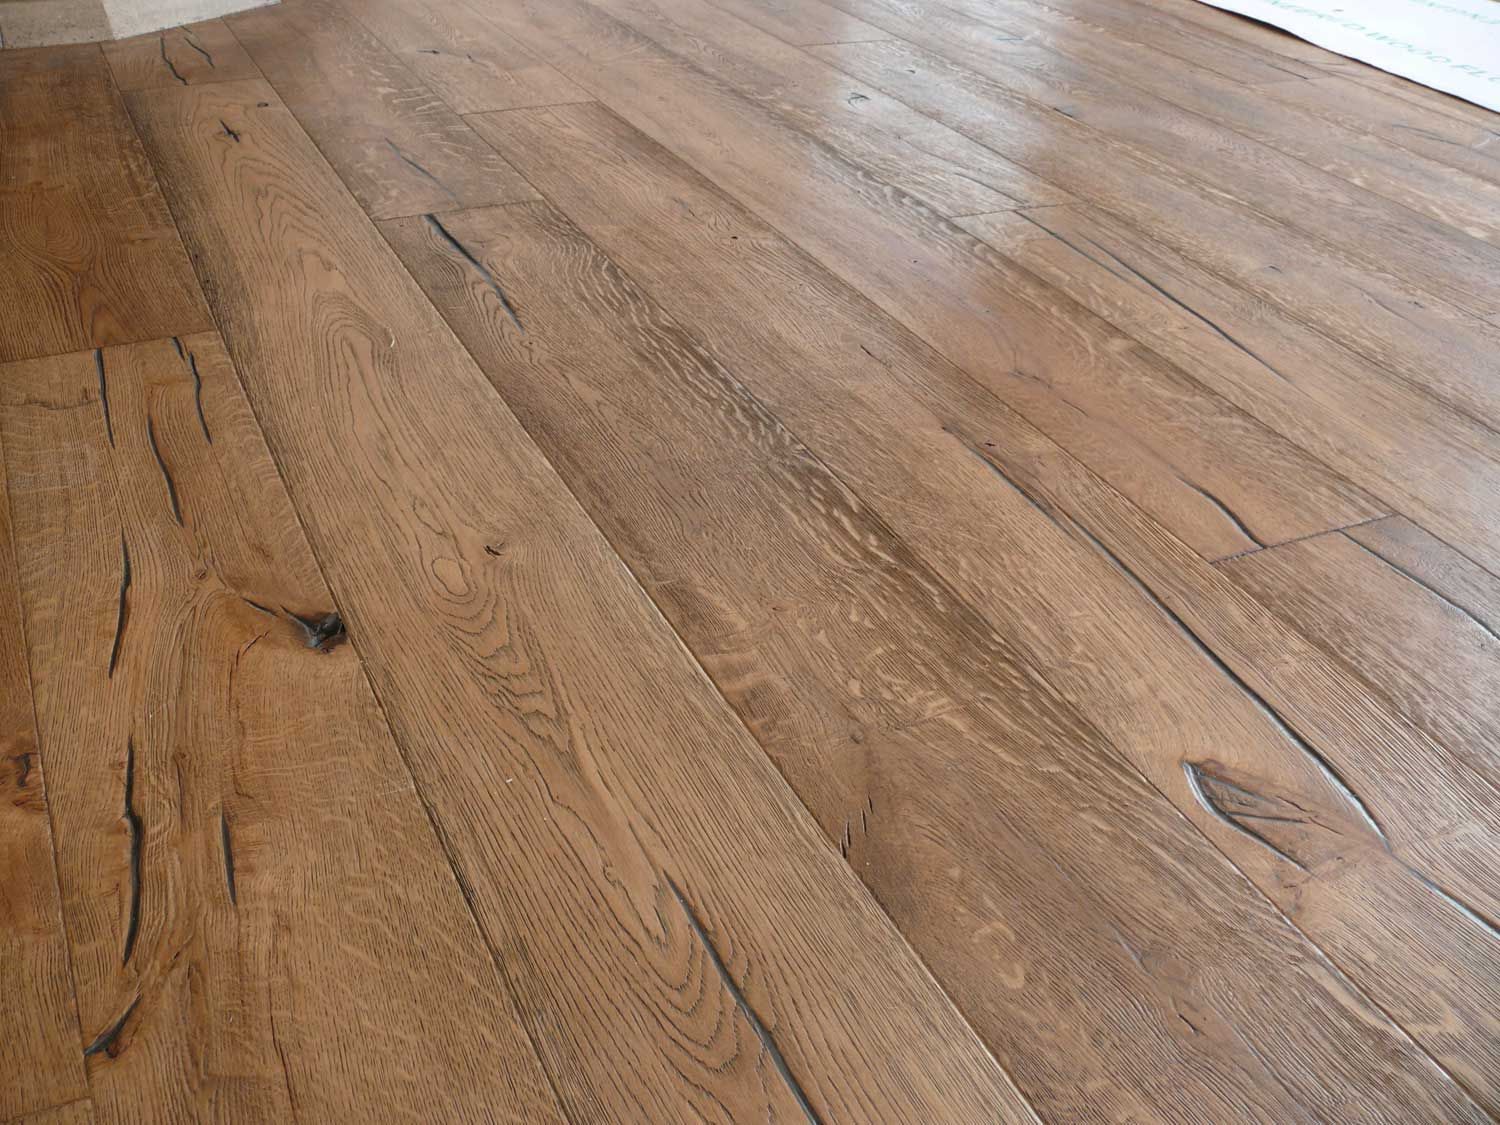 Find this Pin and more on Distressed Antique and reclamed oak wood flooring.  Unfinished distressed engineered ... - 12 Best Distressed Antique And Reclamed Oak Wood Flooring Images